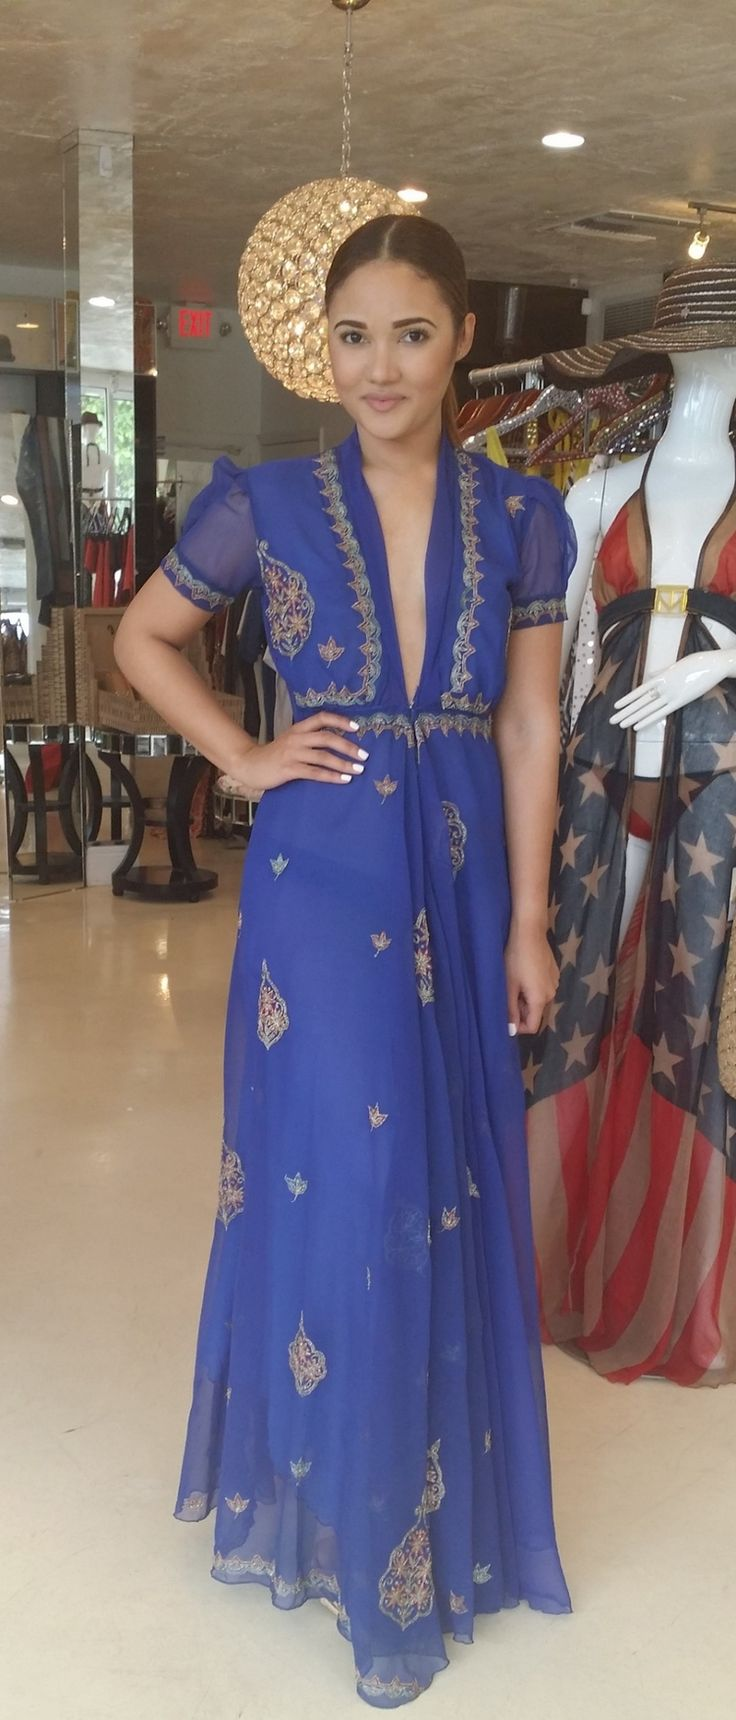 Embroidered Saree Dress 995.00 A deep blue, hand embroidered saree dress with gold floral stitching.  Available in standard sizes or custom tailored using our TM Custom Experience Form at check out. Please allow 2 additional weeks (plus shipping) to tailor this item to your measurements. www.tanyamariedesign.com